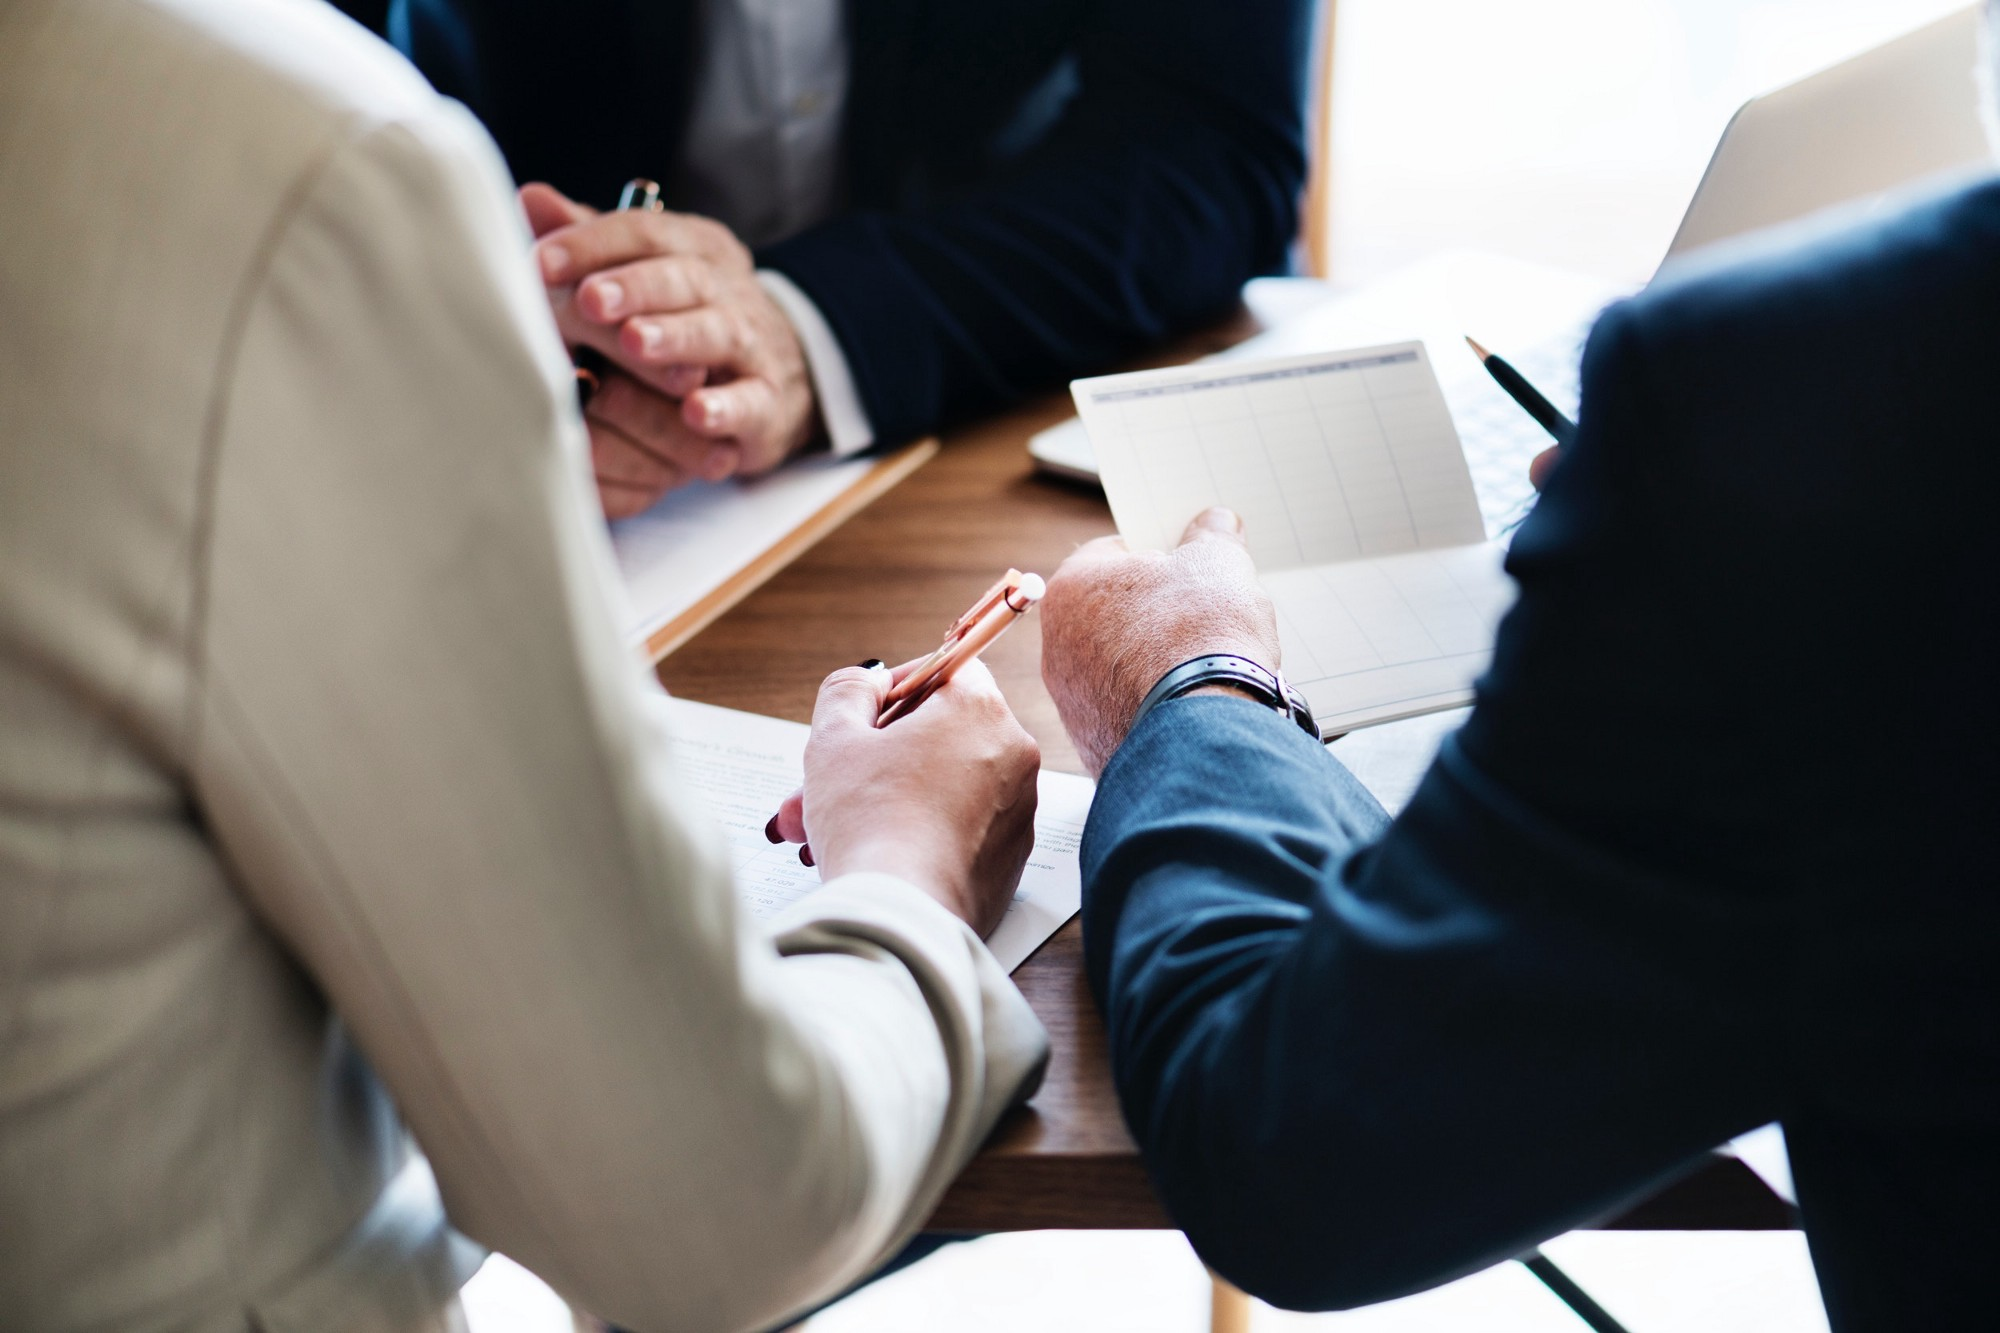 7 Tricks for negotiating in business situations